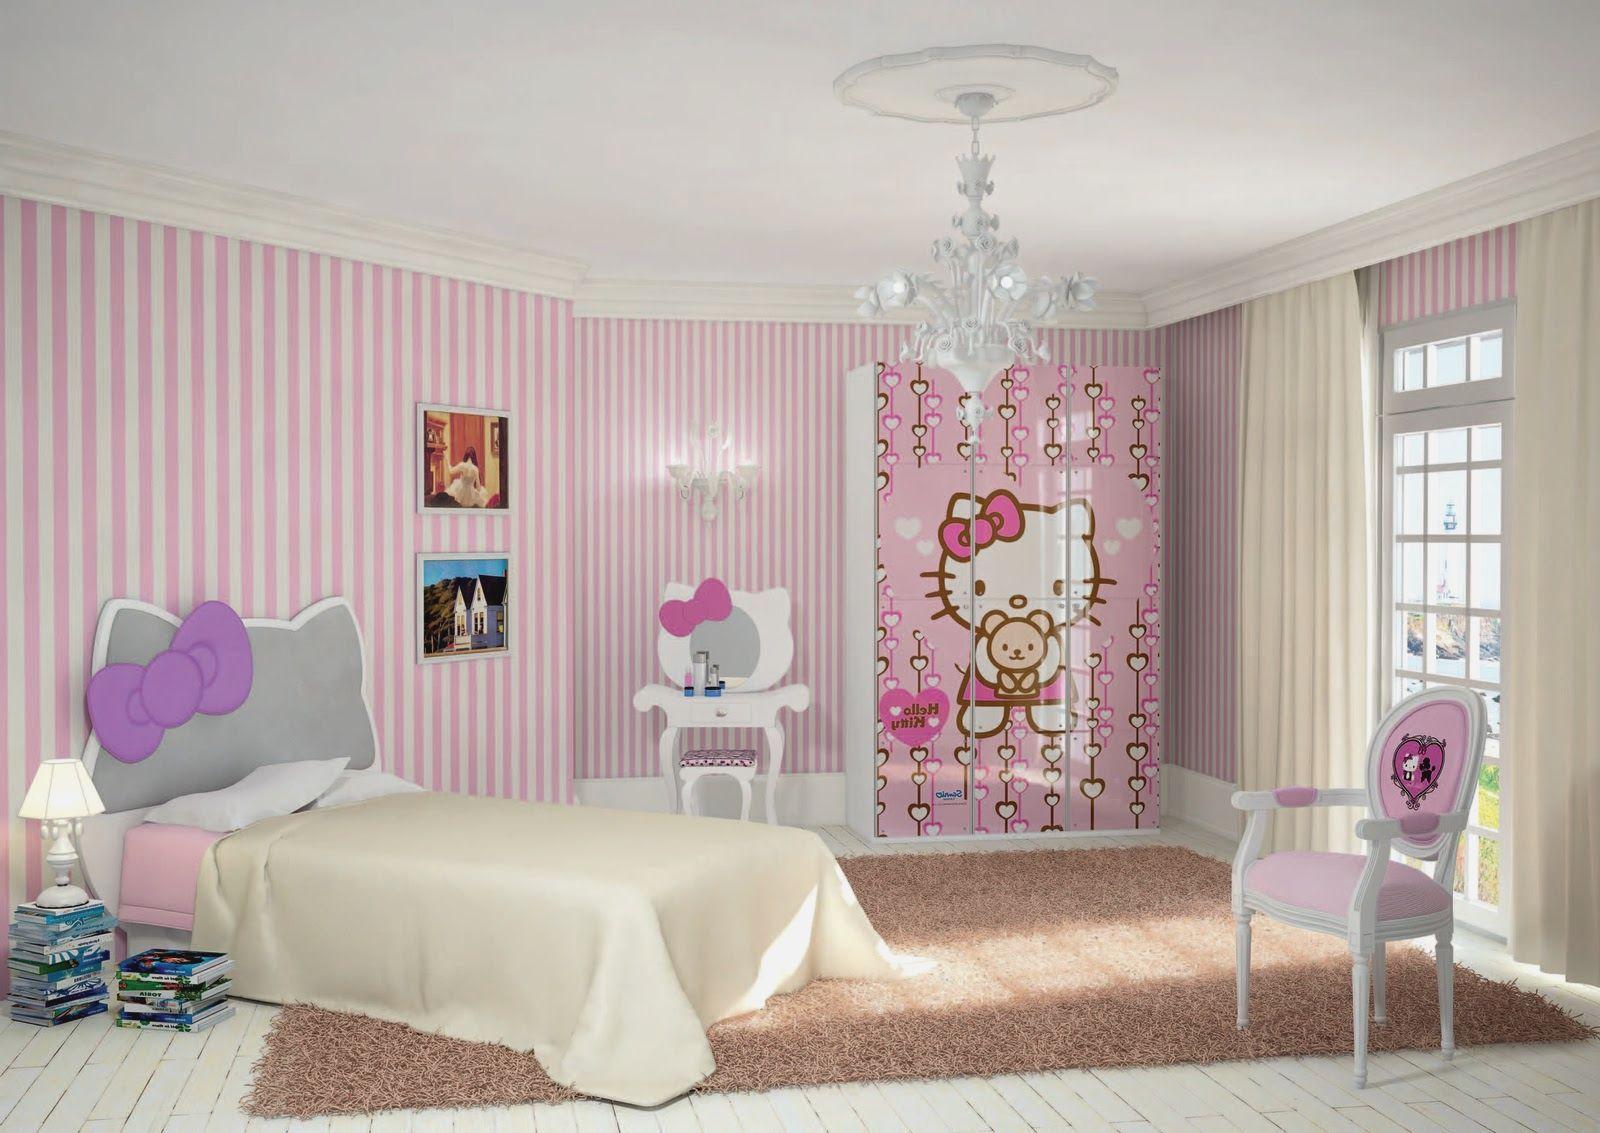 Bedroom Ideas For Girls Hello Kitty     more picture Bedroom Ideas For Girls Hello Kitty please visit www.gr7ee.com